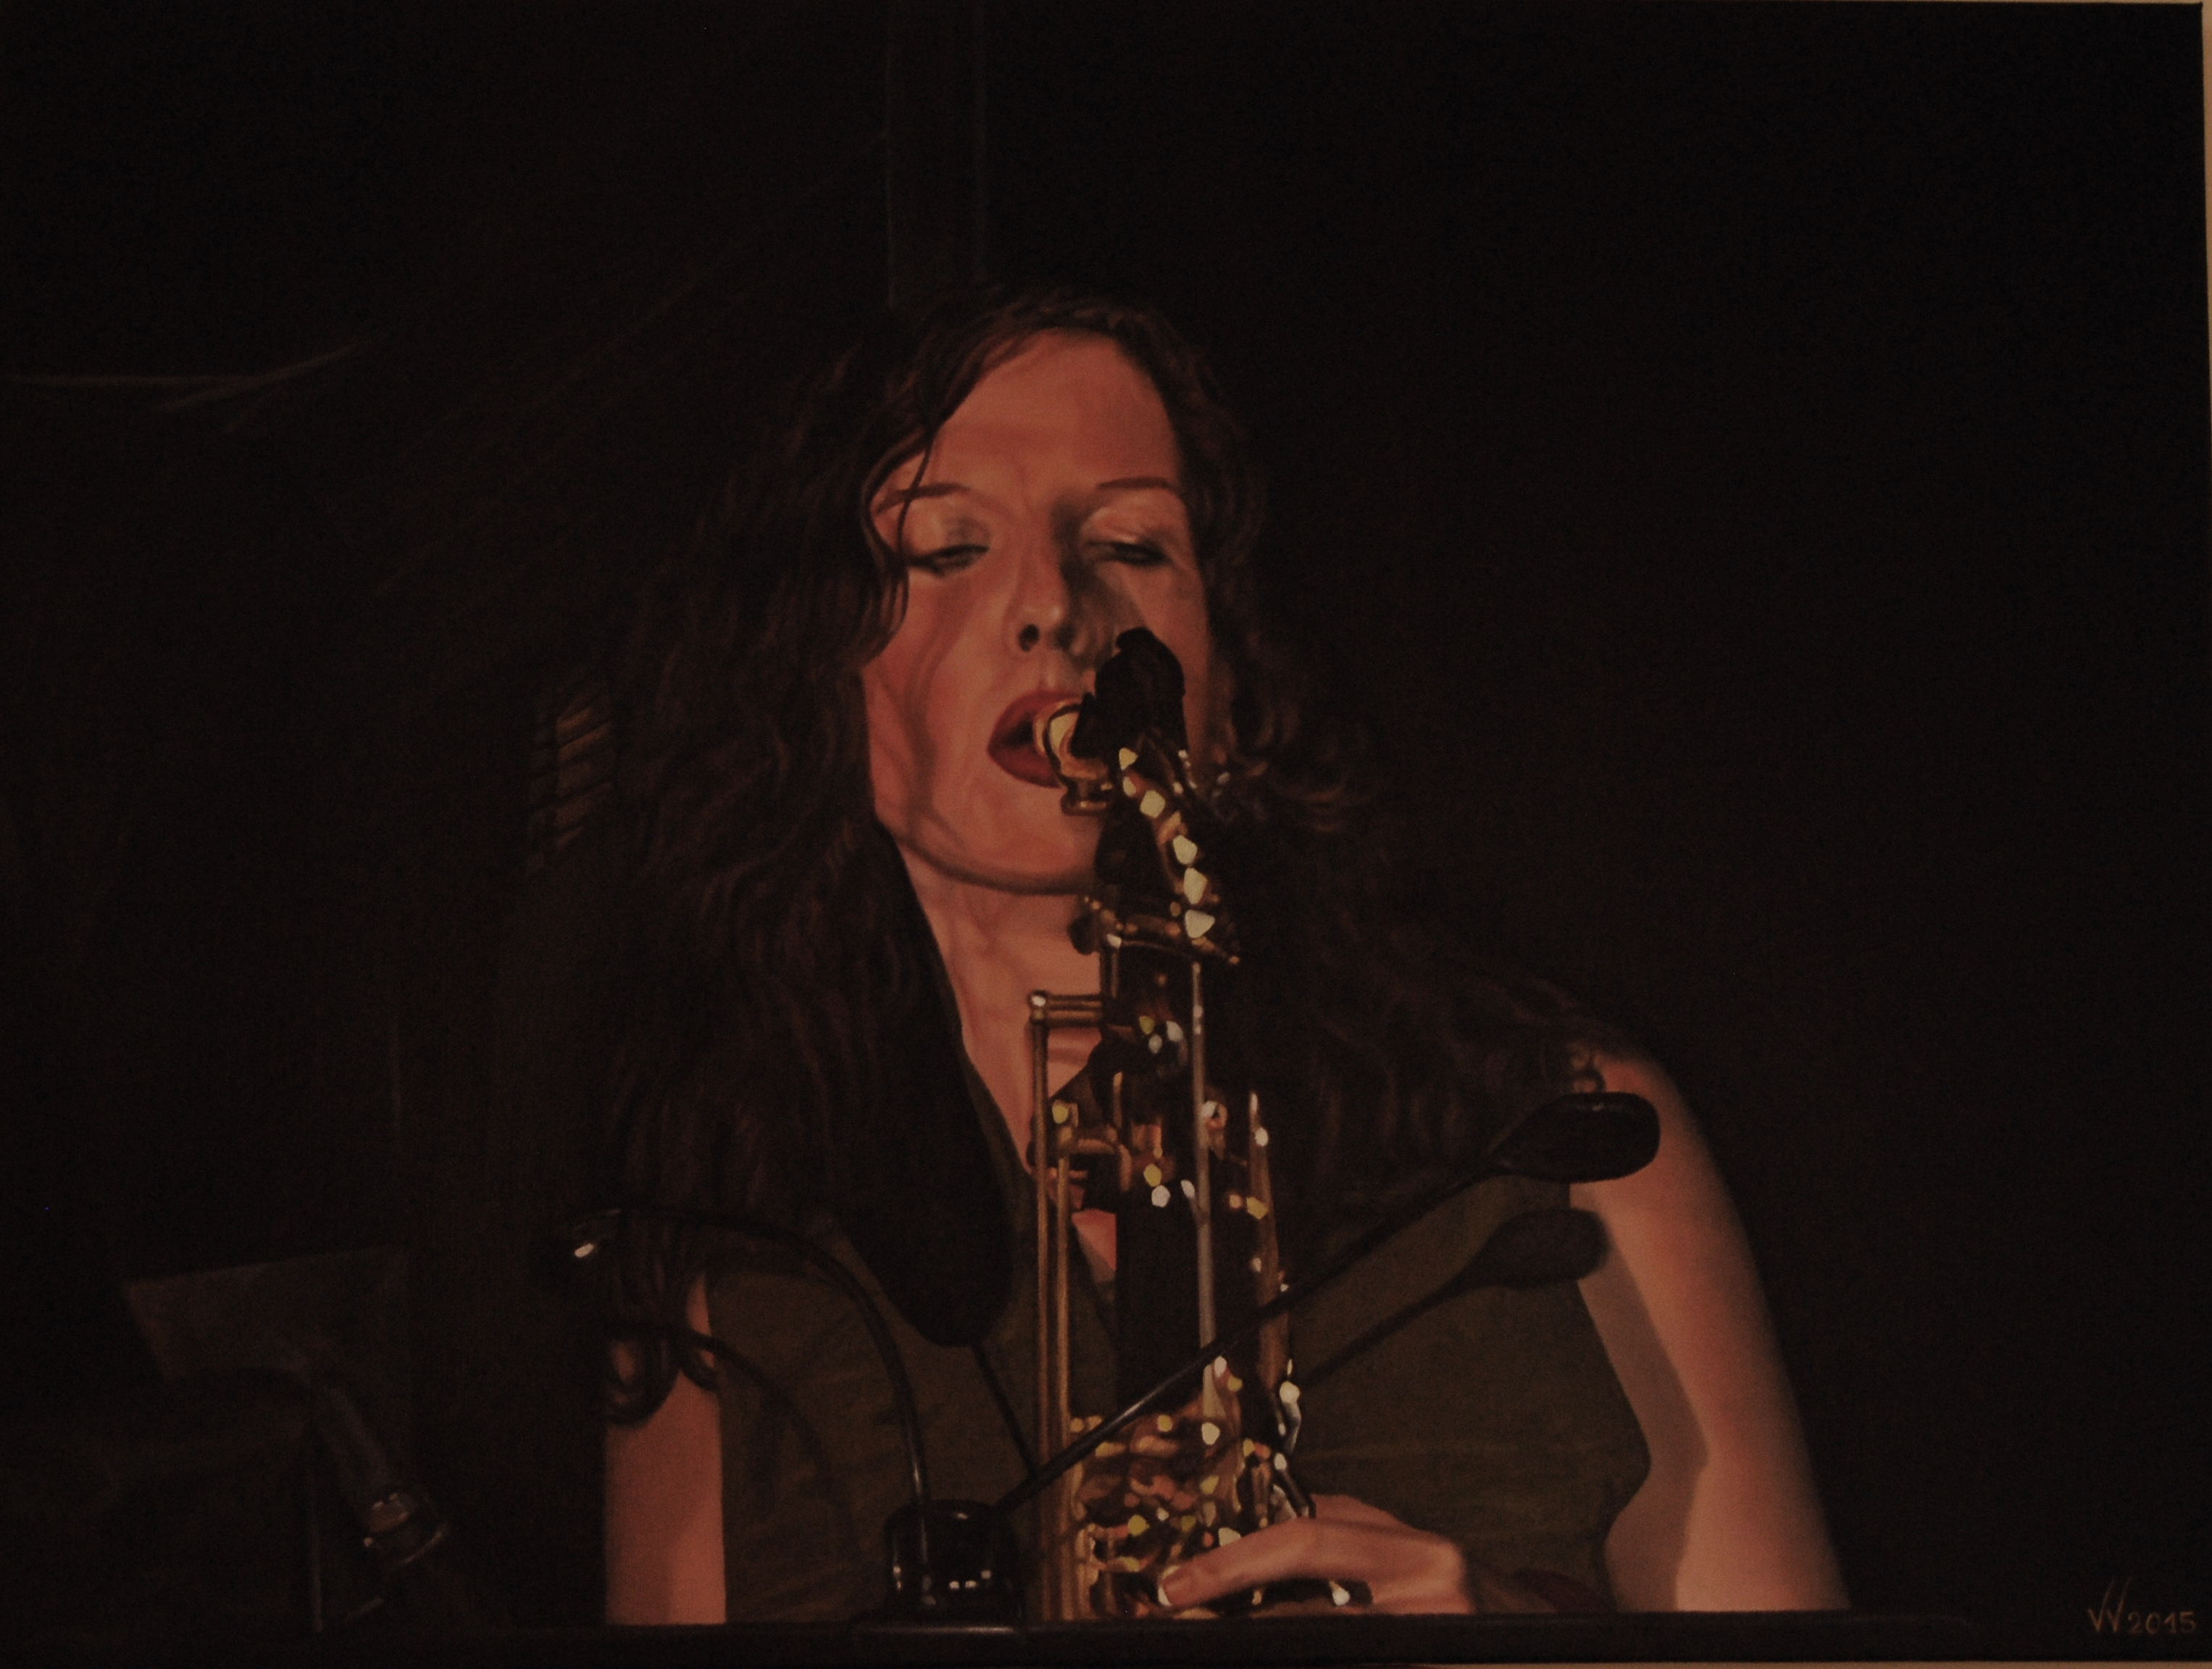 Portrait of a saxophonist